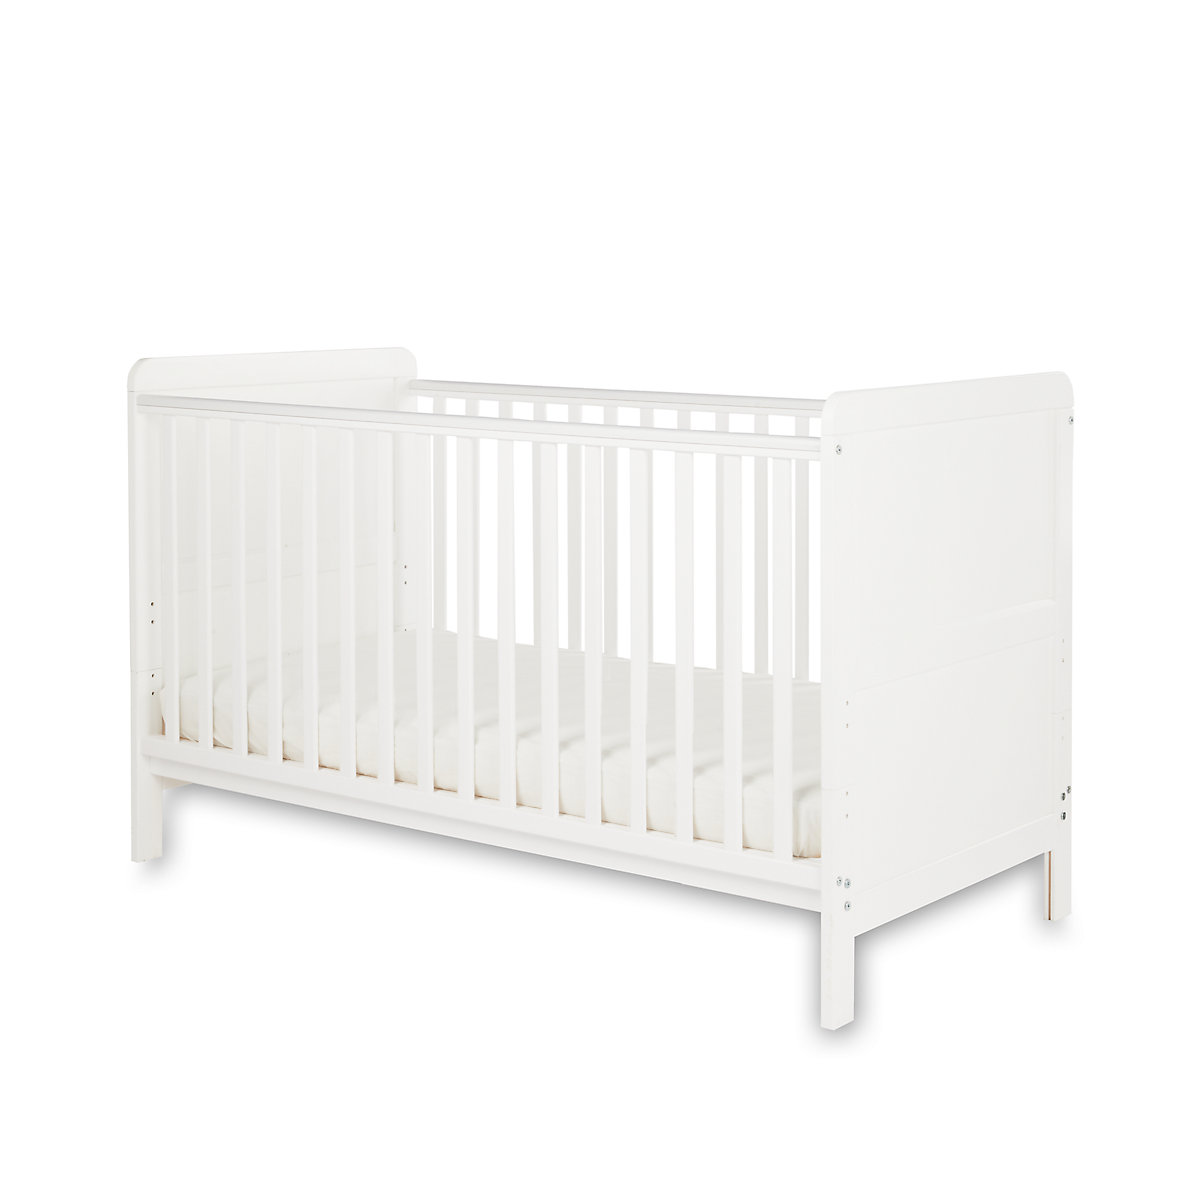 Little Acorns Classic Cot Bed   White